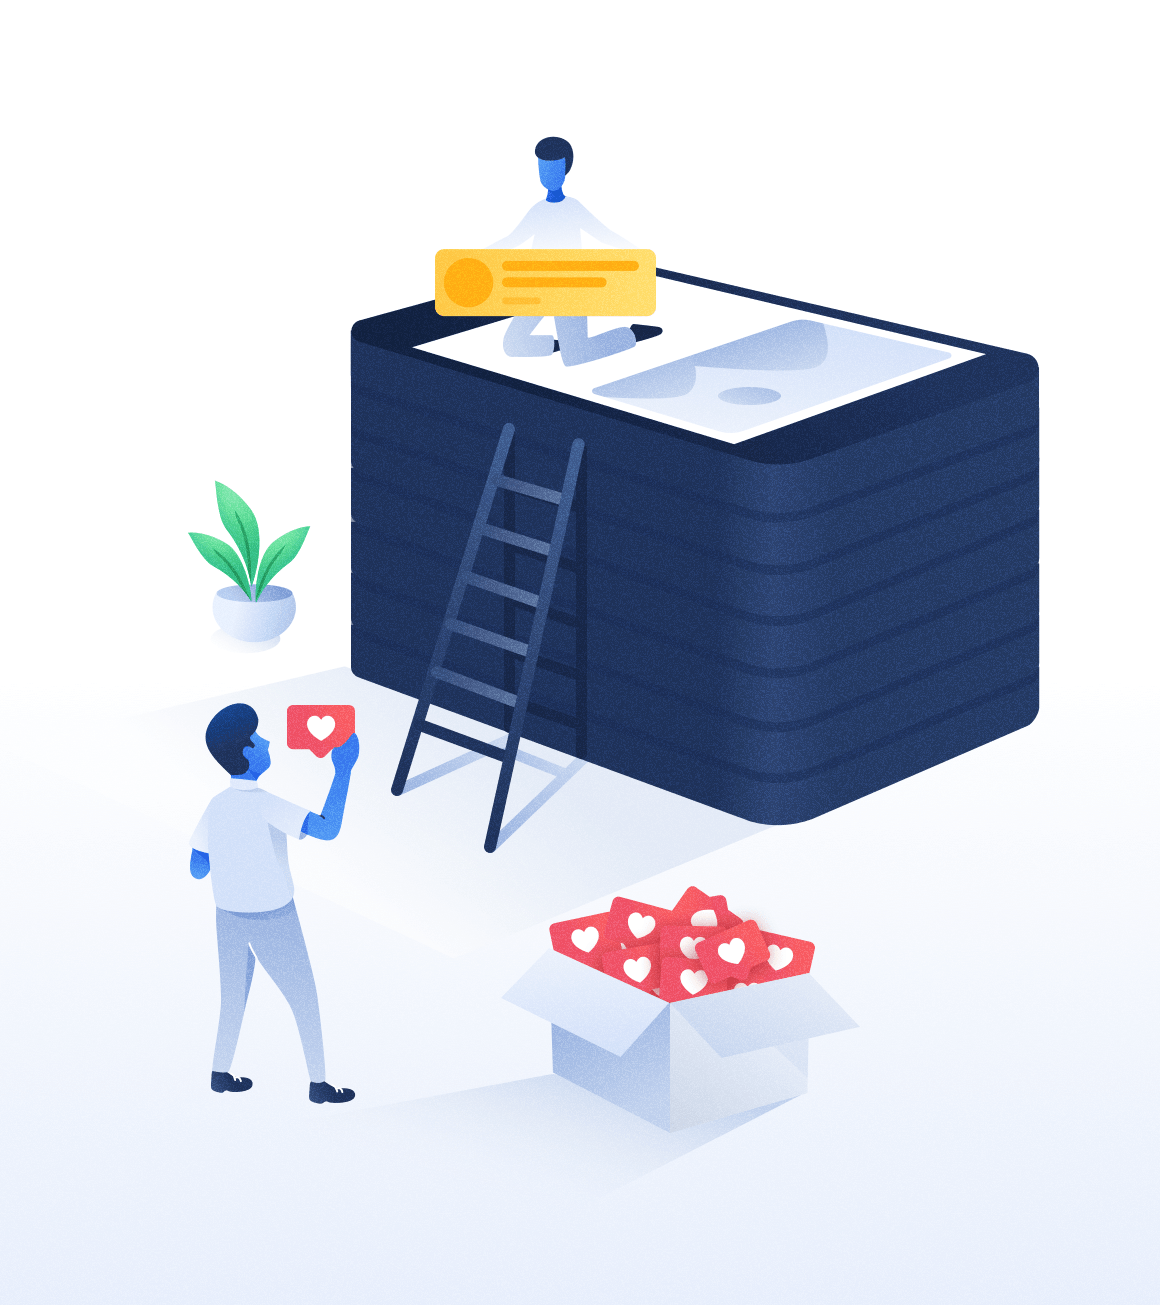 As Slack grows rapidly, using Stripe helps them scale payments easily—supporting everything from getting paid by users around the world to enabling ACH payments for larger customers. -